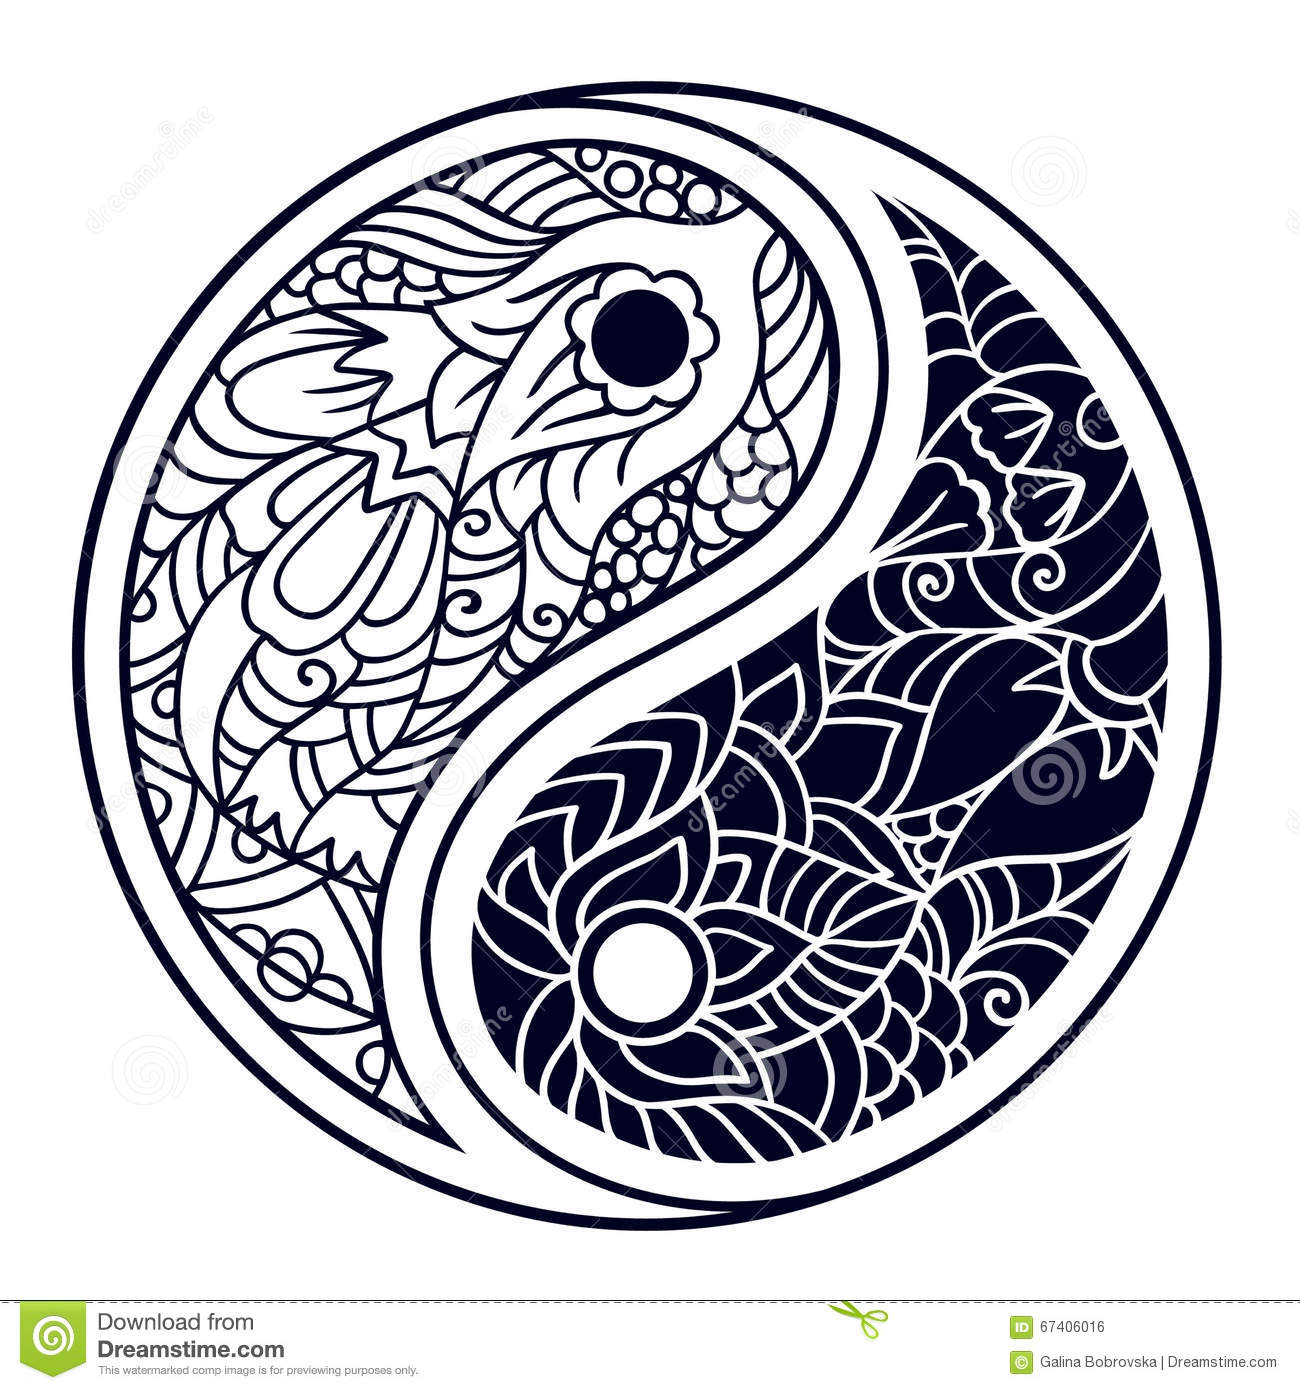 yin and yang decorative symbol hand drawn vintage style design stock vector image 67406016. Black Bedroom Furniture Sets. Home Design Ideas